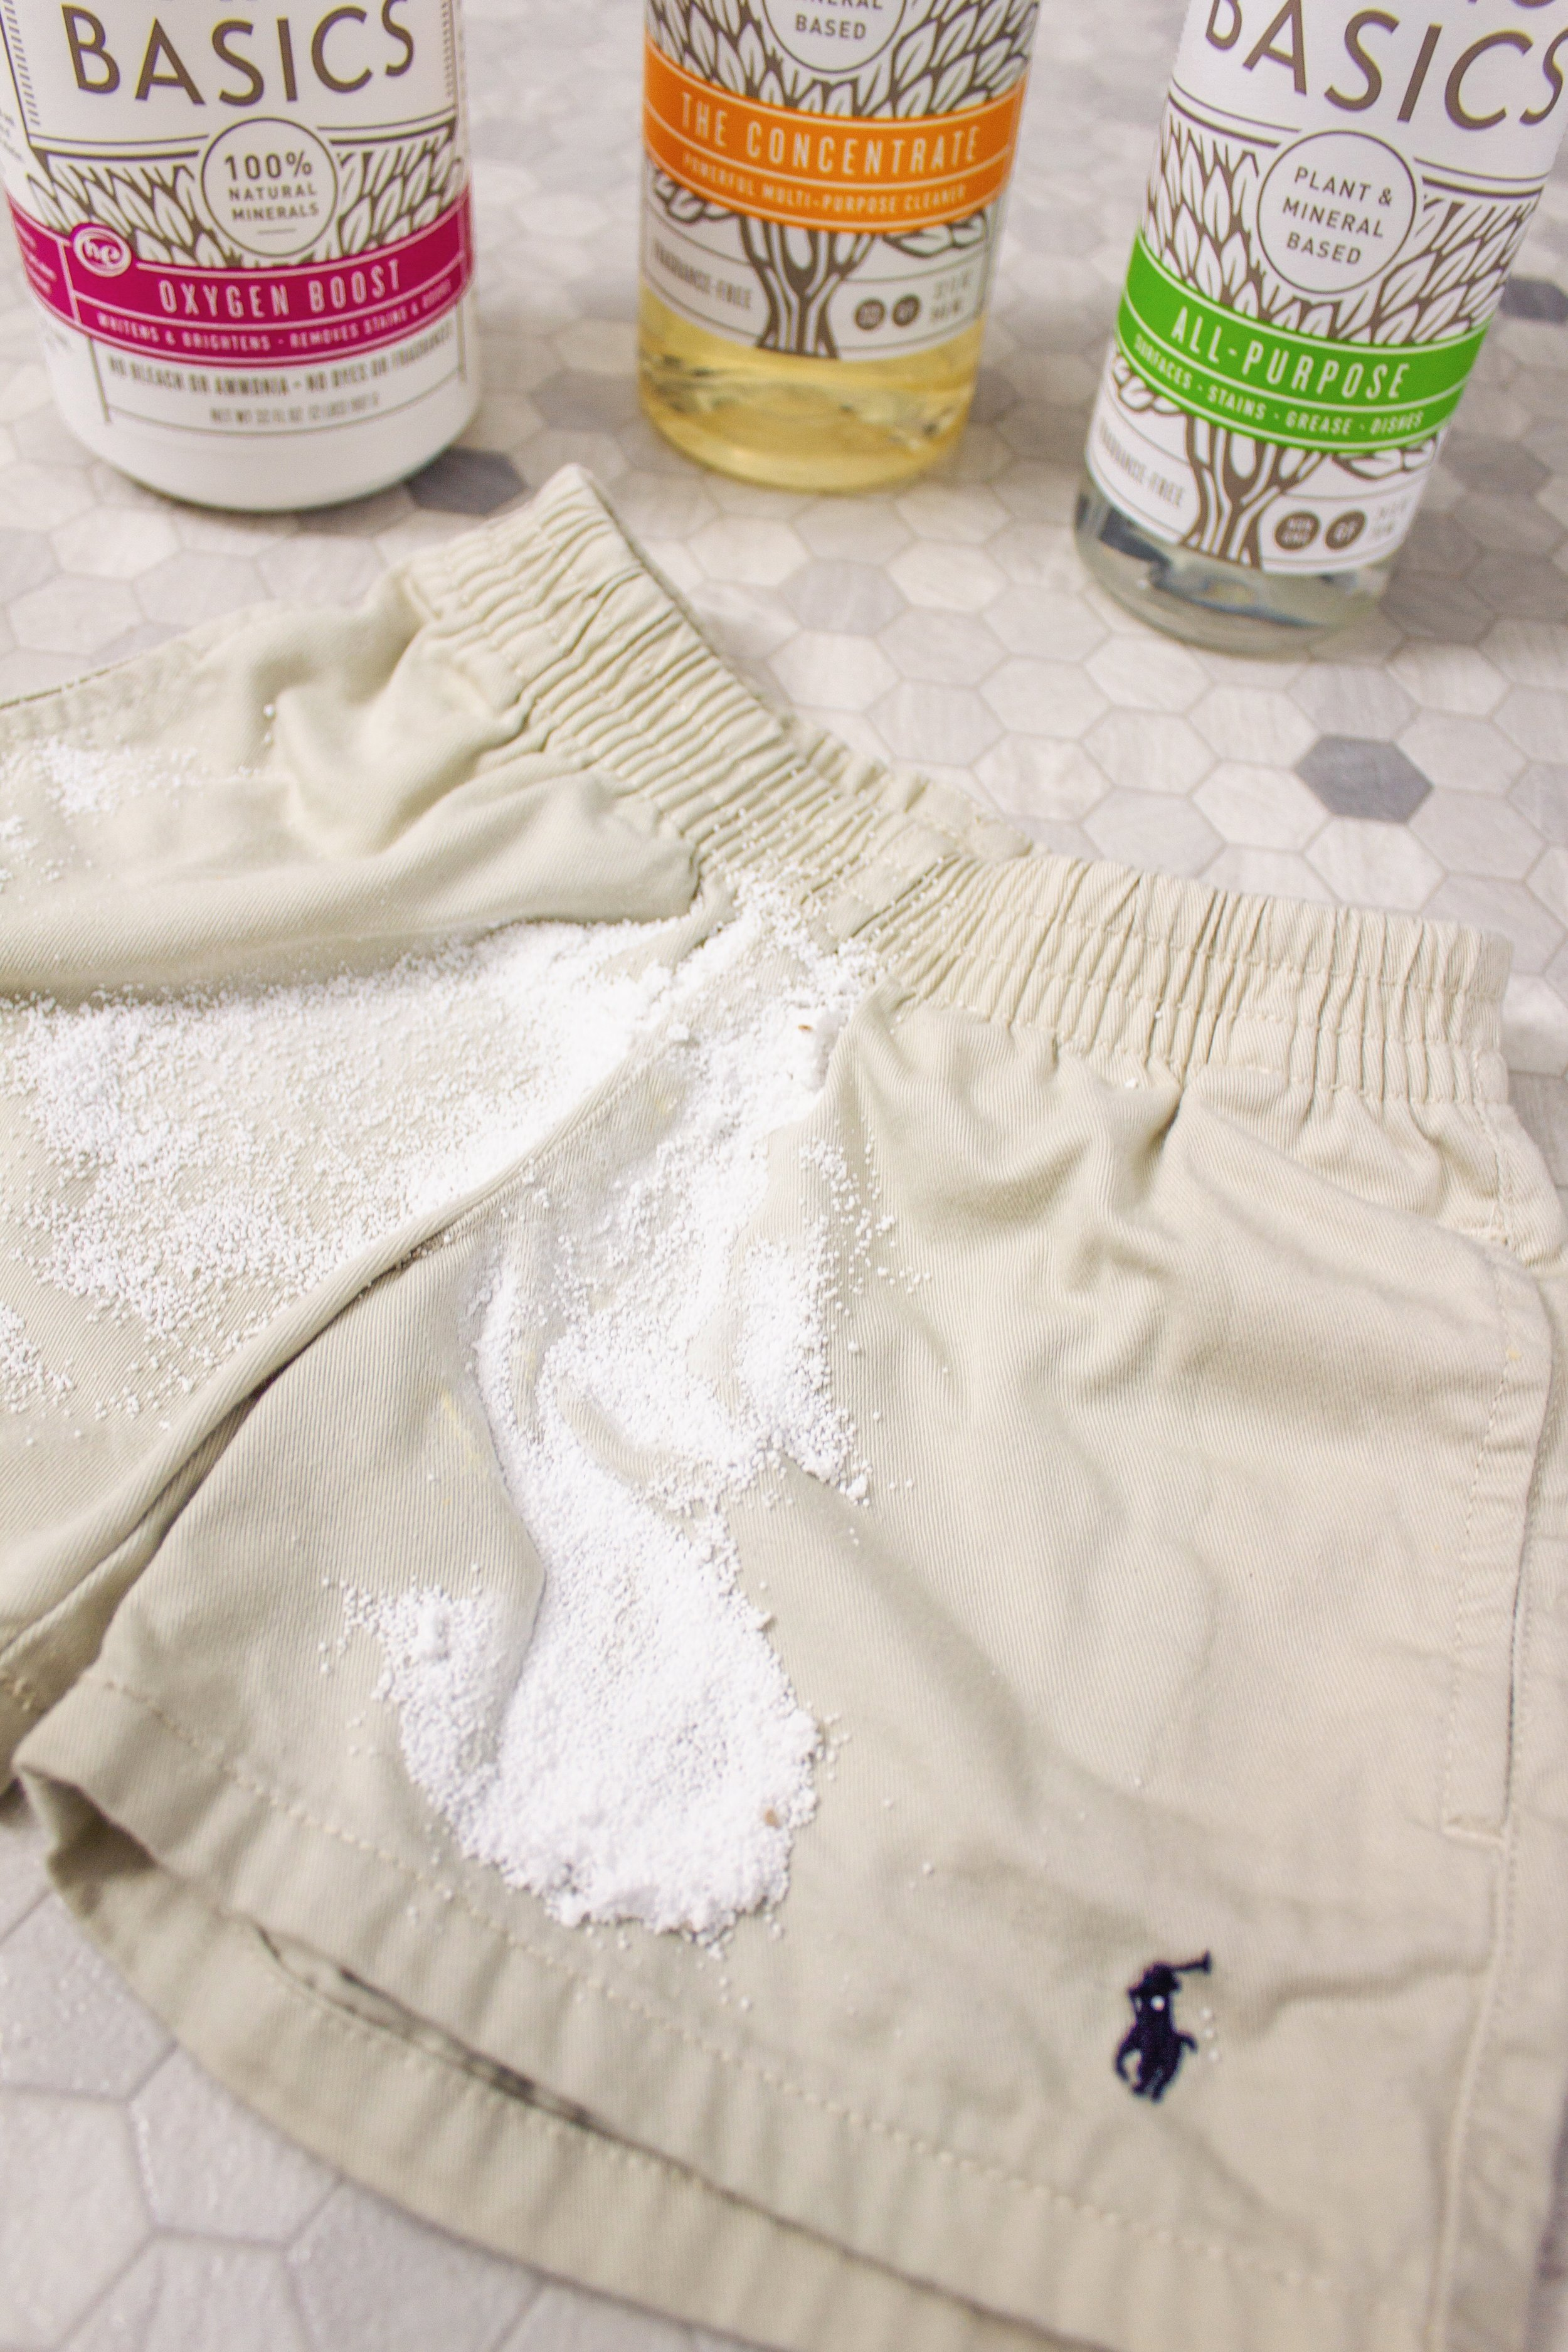 STEP FIVE: Brush off + throw in the wash - Brush off the Oxygen Boost to make sure the stain is fully gone + throw in the wash!